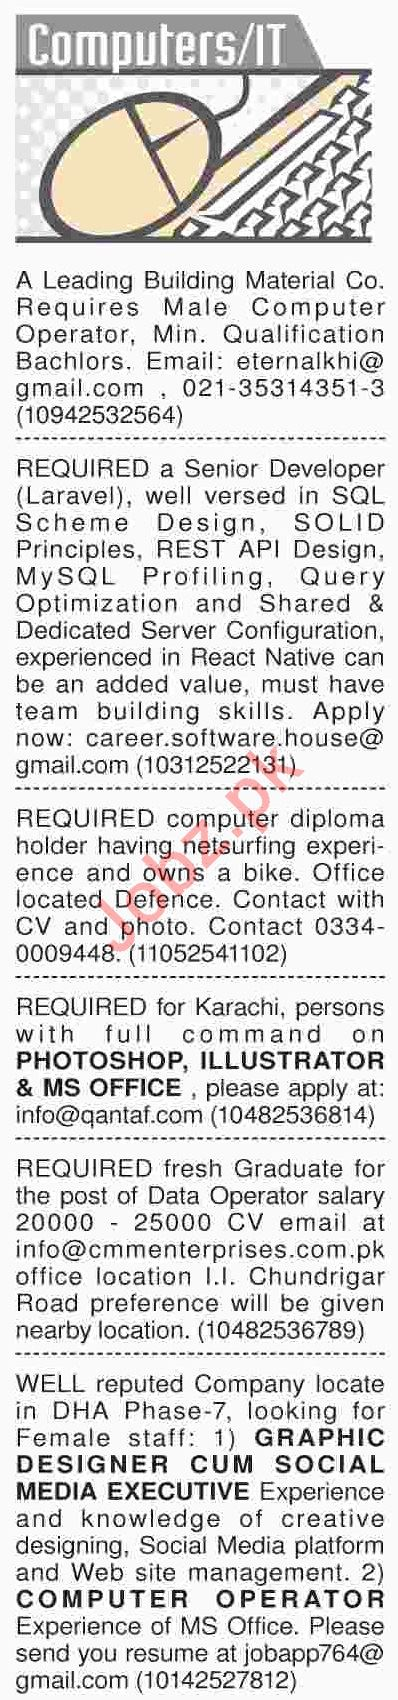 Dawn Sunday Classified Ads 7th April 2019 for IT Staff